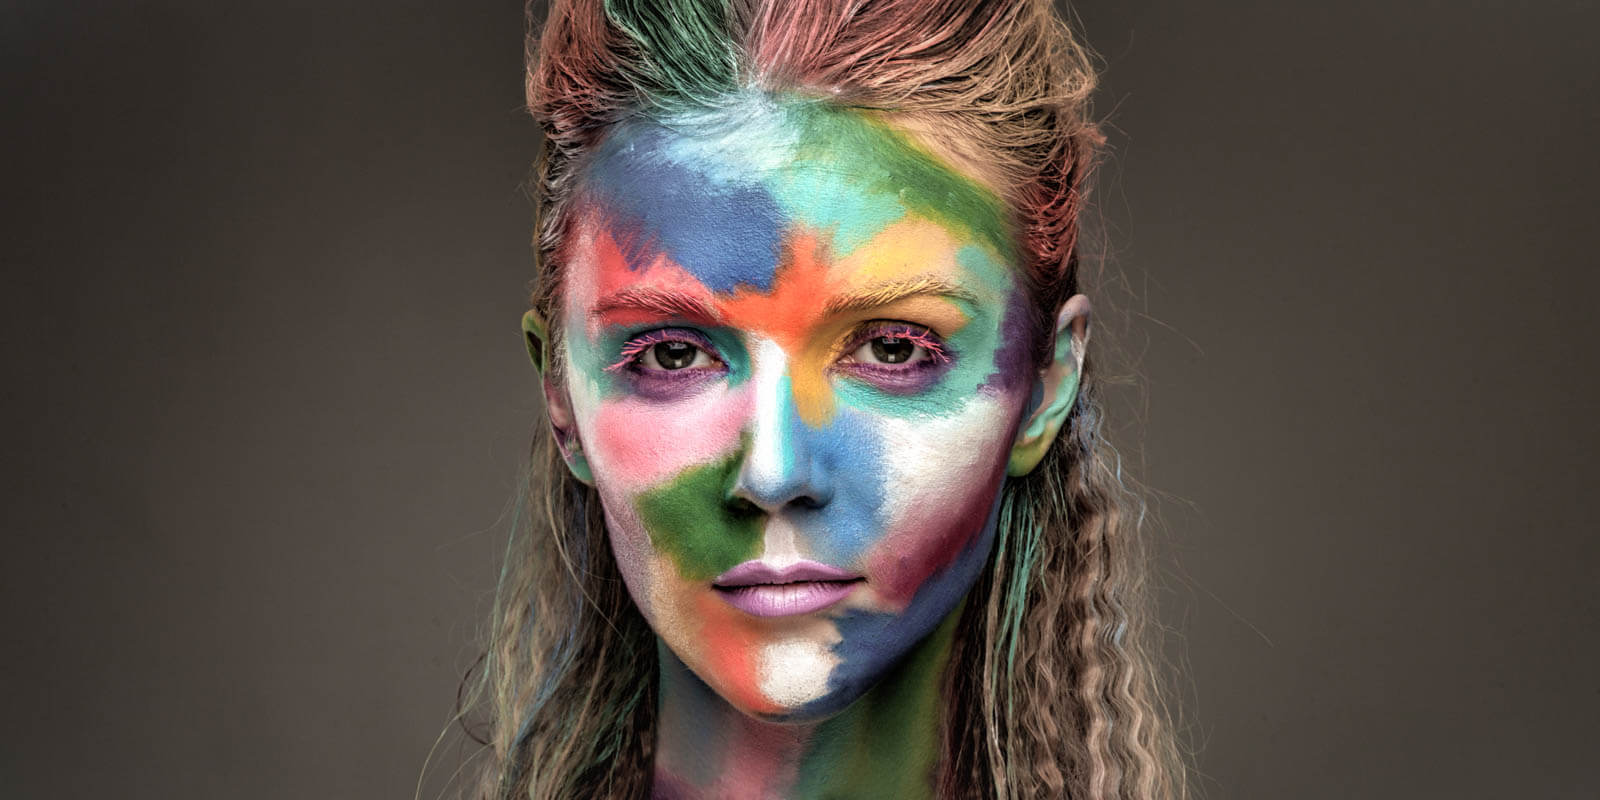 A Woman with colourful bodypainting in her face